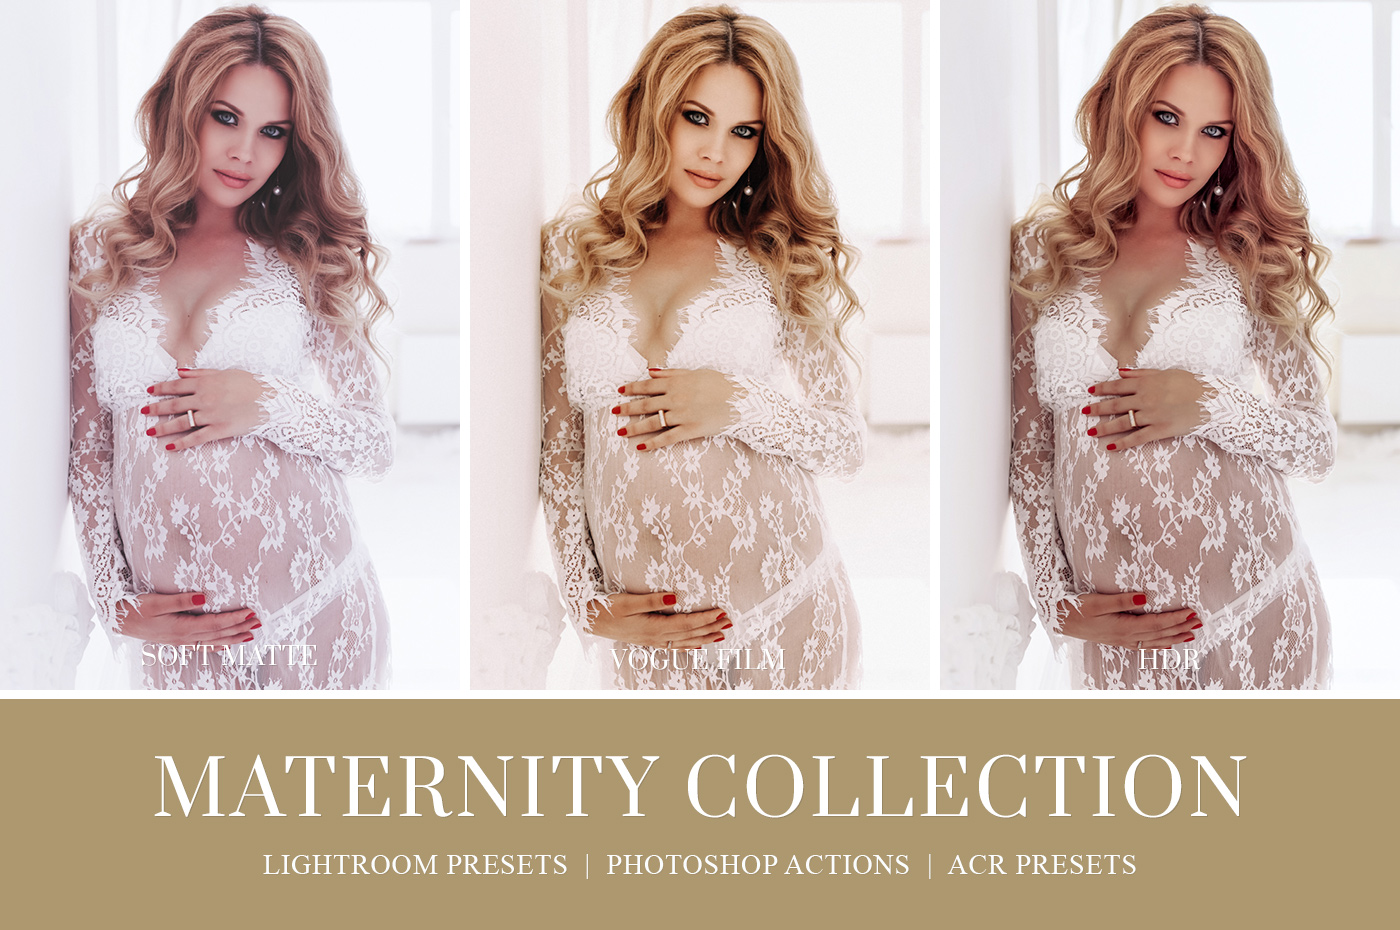 Indoor maternity photography editing lightroom presets